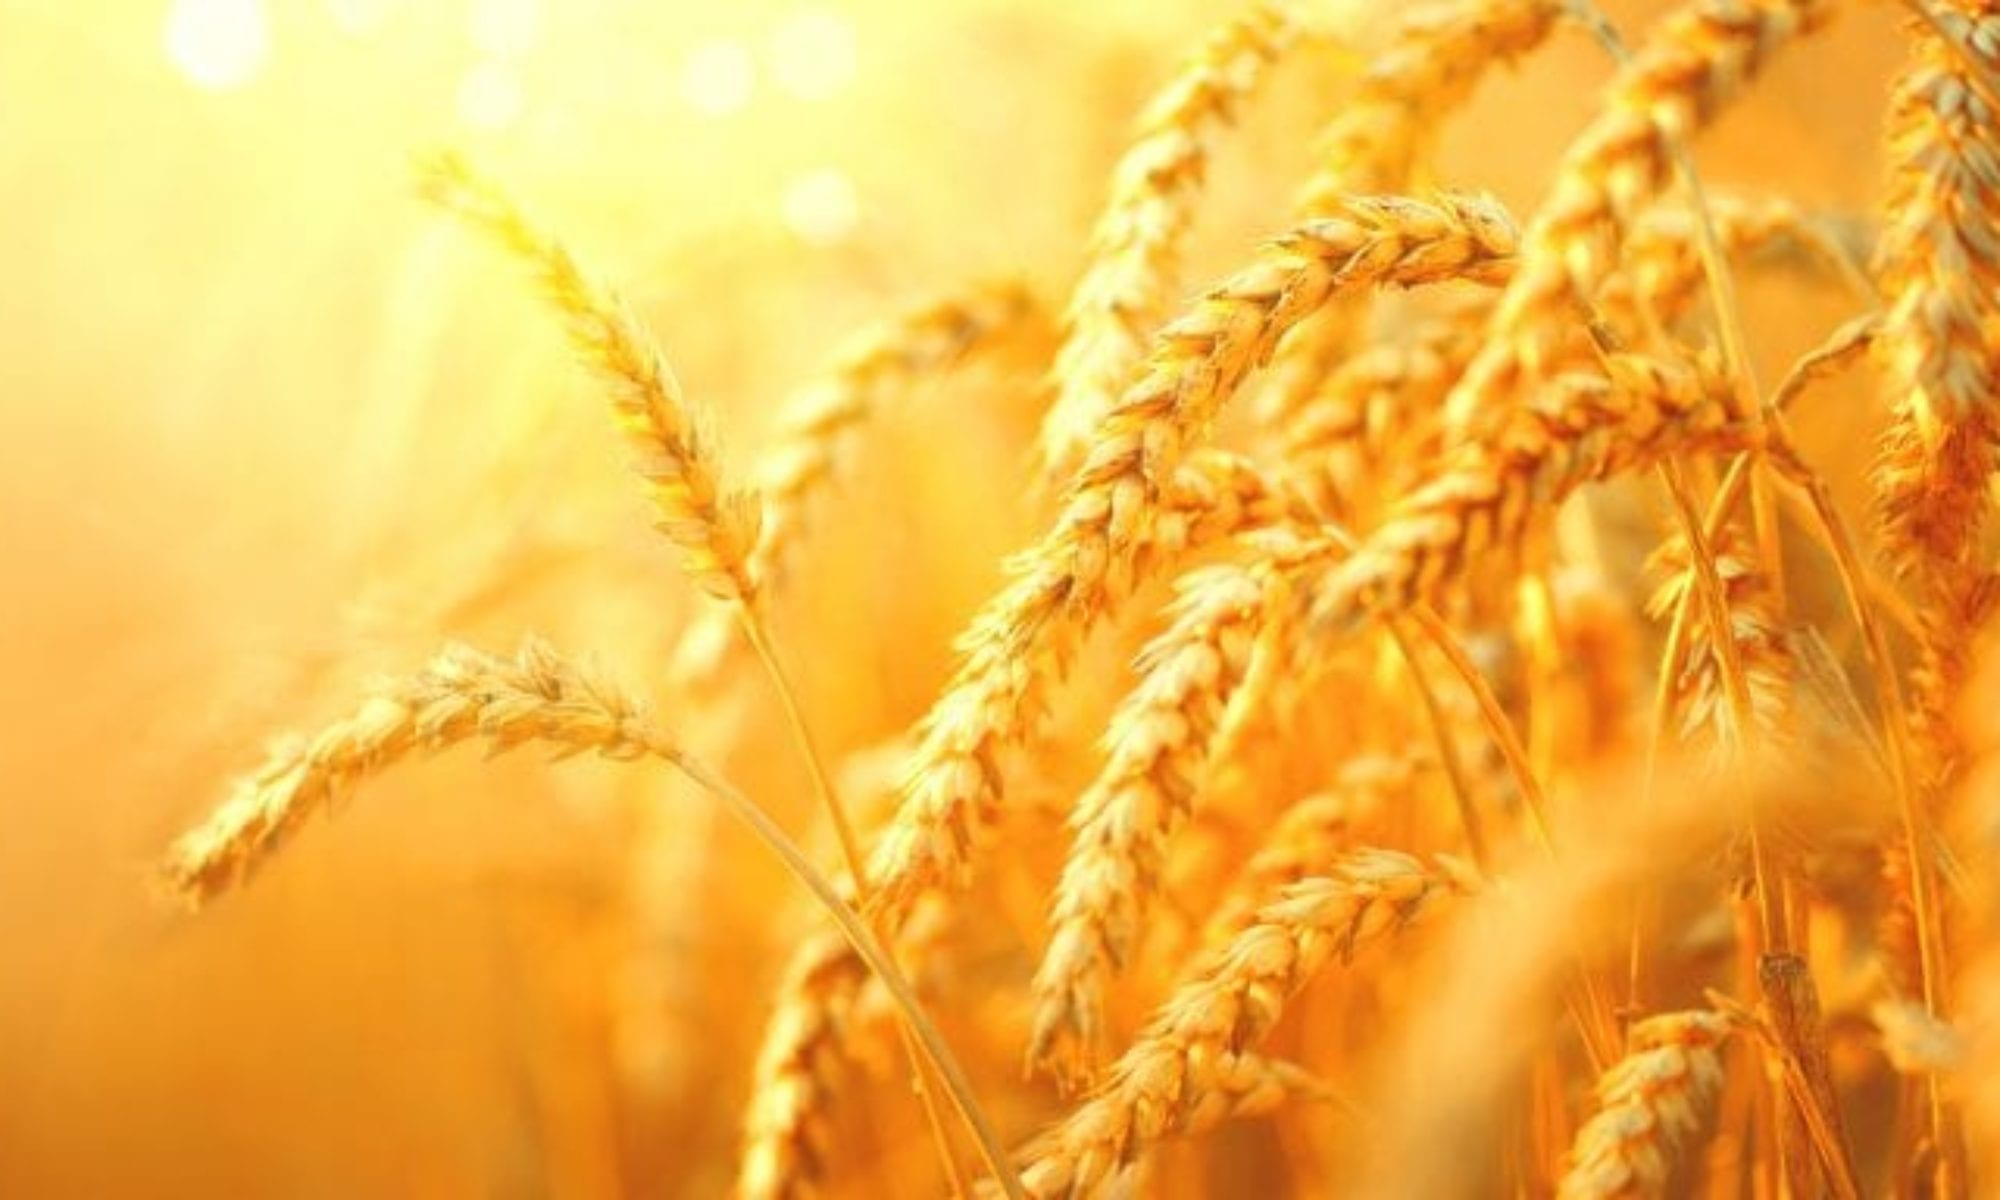 Featured image of golden wheat for Country Harmony Natural Foods in Lehighton PA